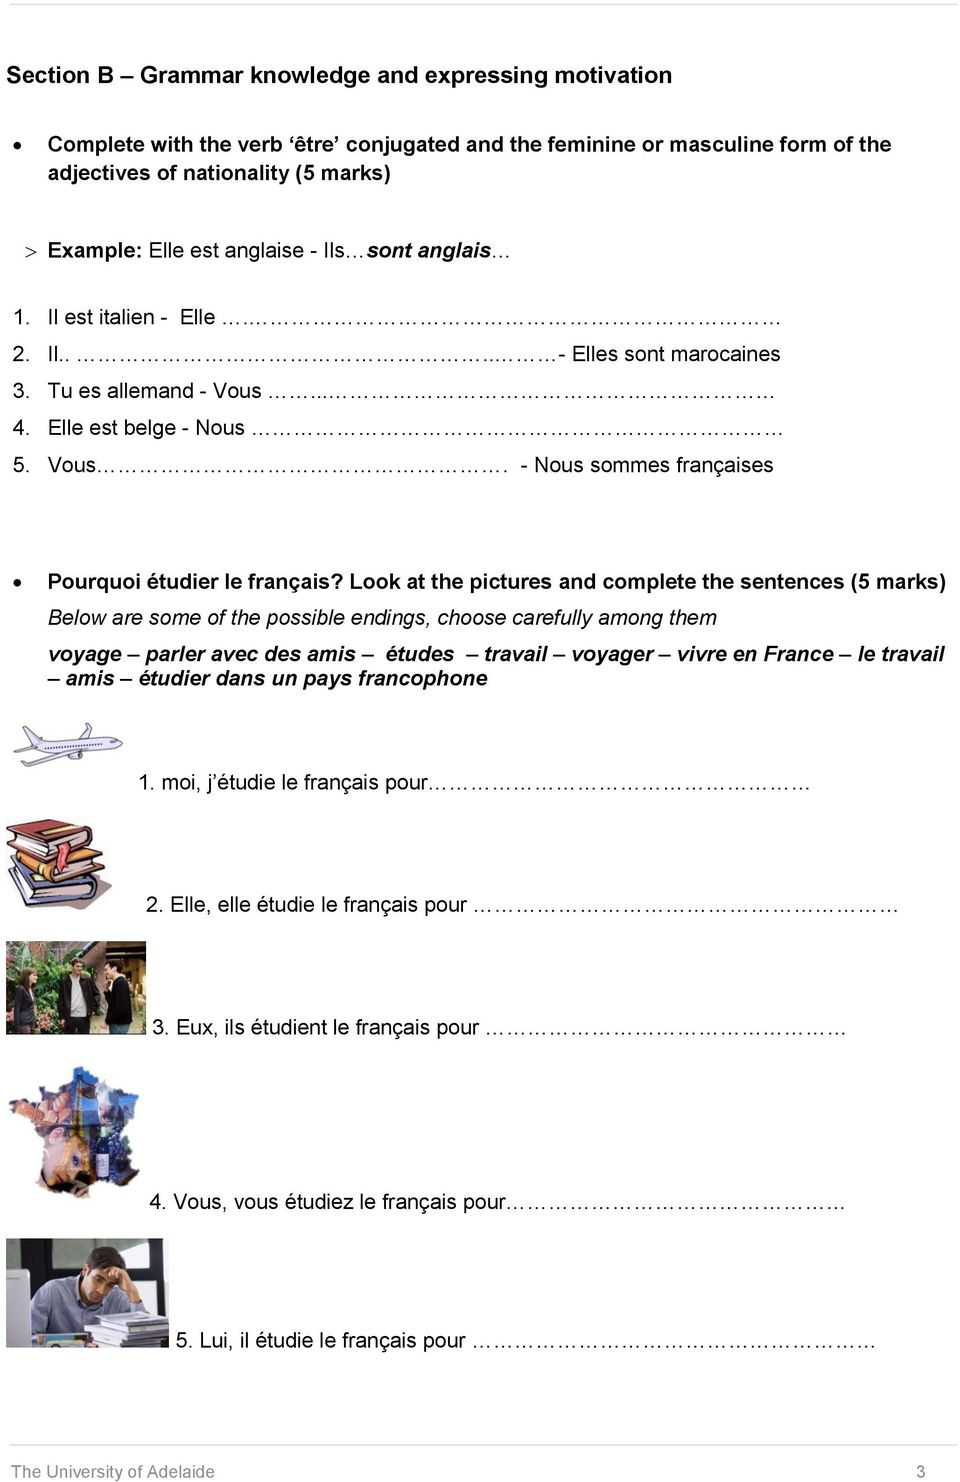 Look at the pictures and complete the sentences (5 marks) Below are some of the possible endings, choose carefully among them voyage parler avec des amis études travail voyager vivre en France le